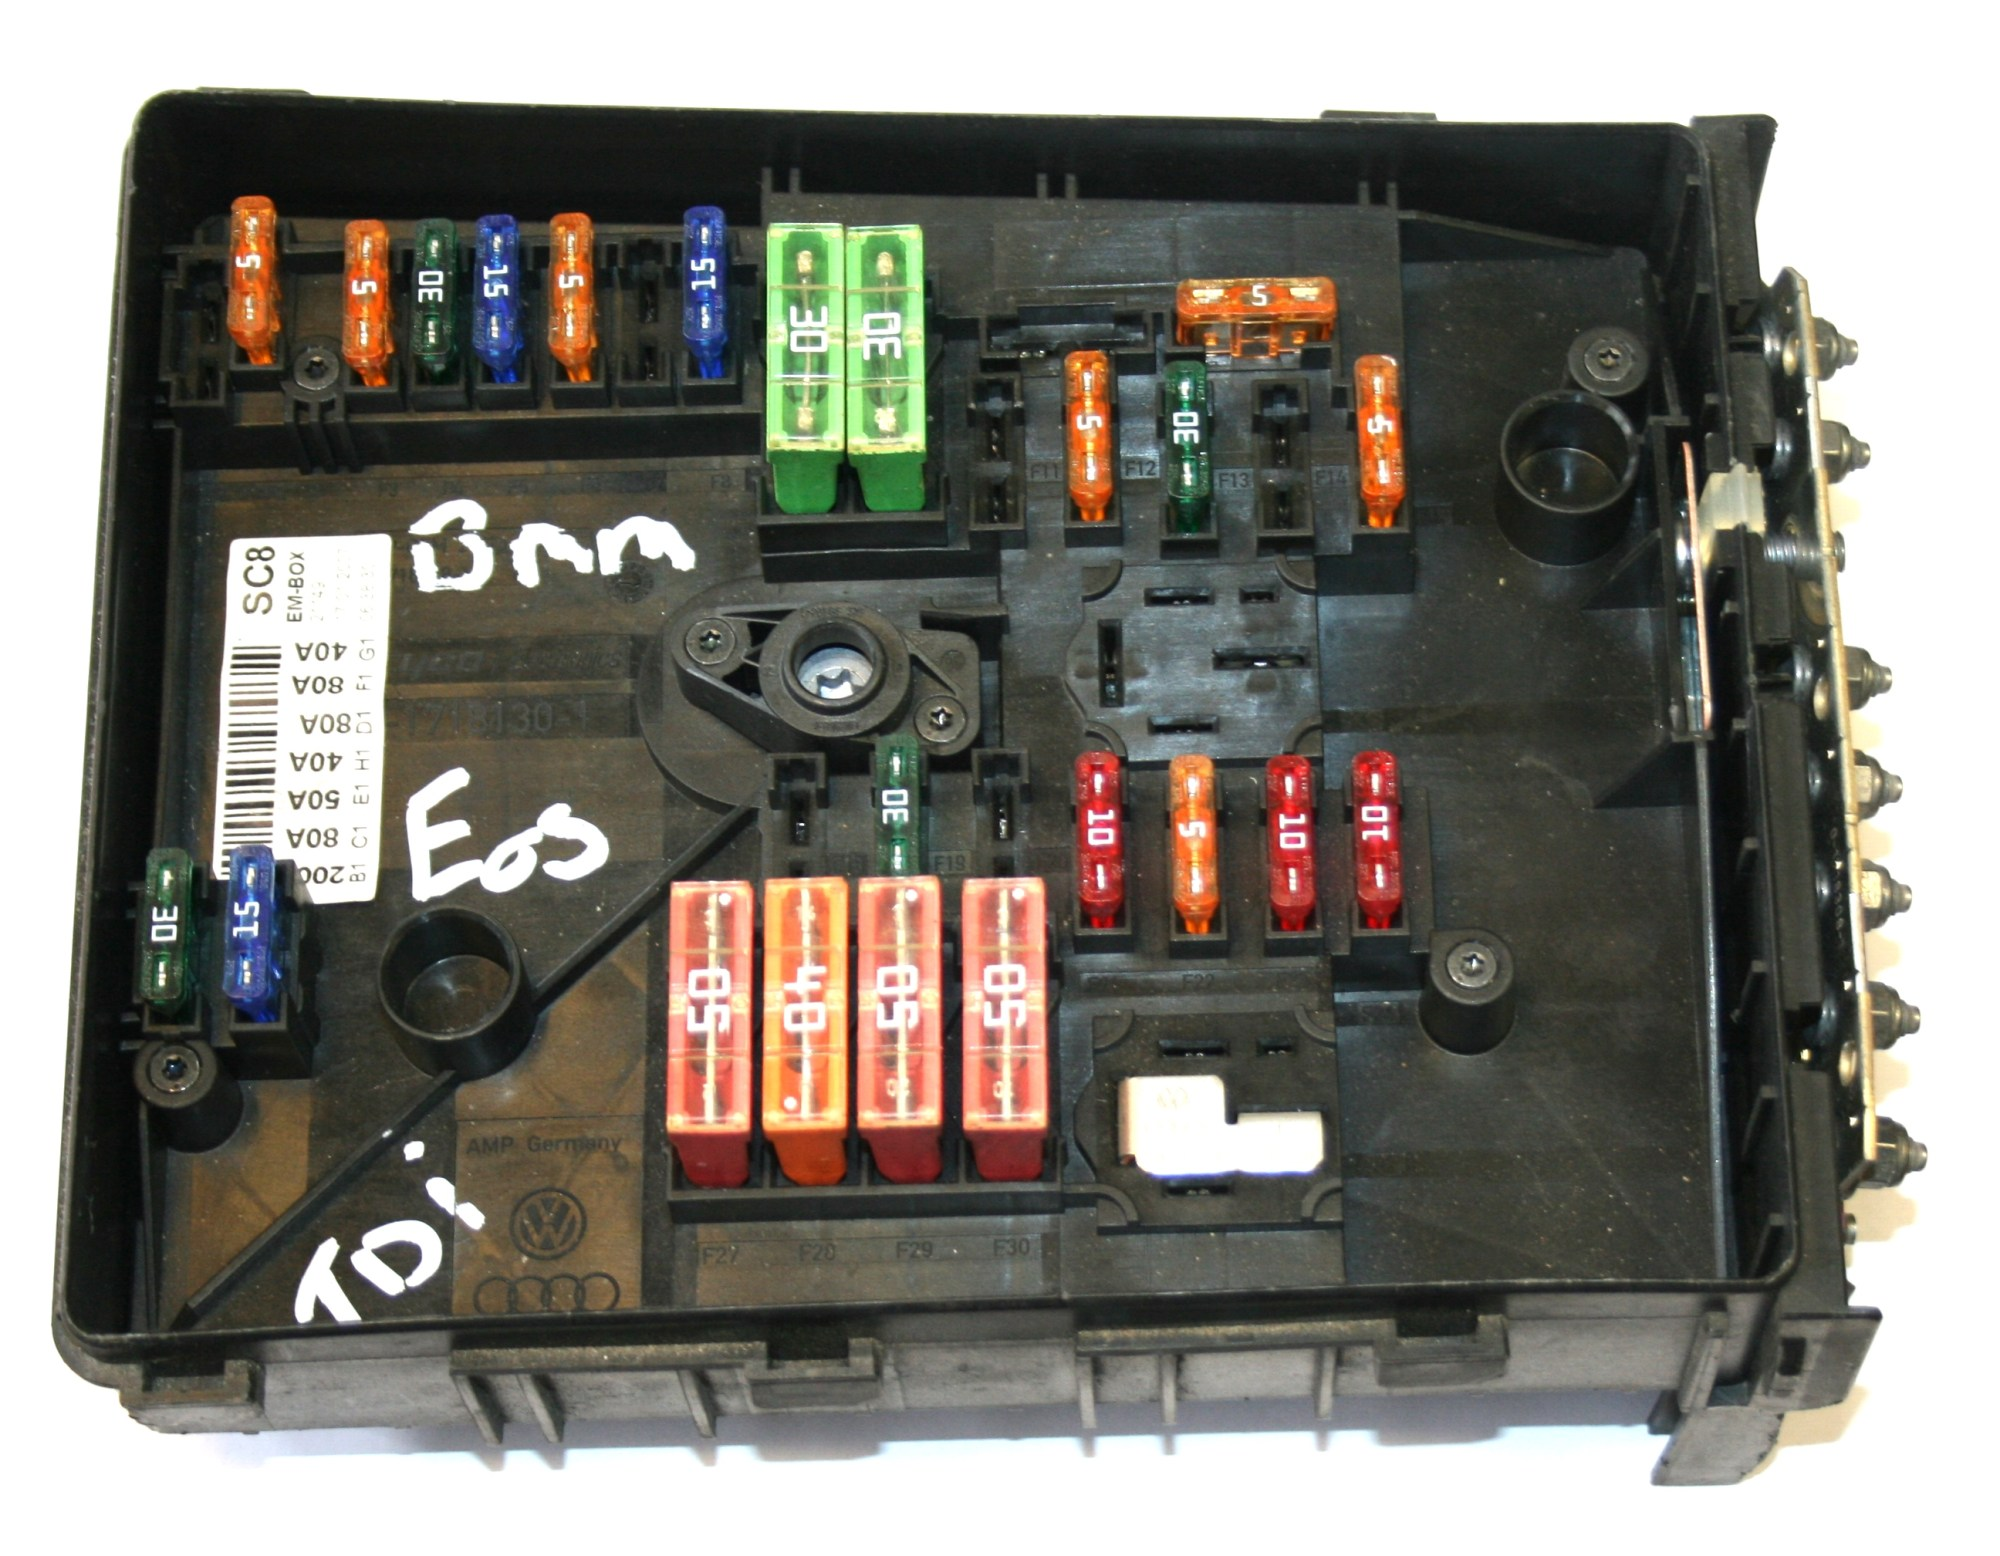 hight resolution of 2008 vw eos fuse diagram wiring library rh 2 pgserver de 2008 vw eos fuse box